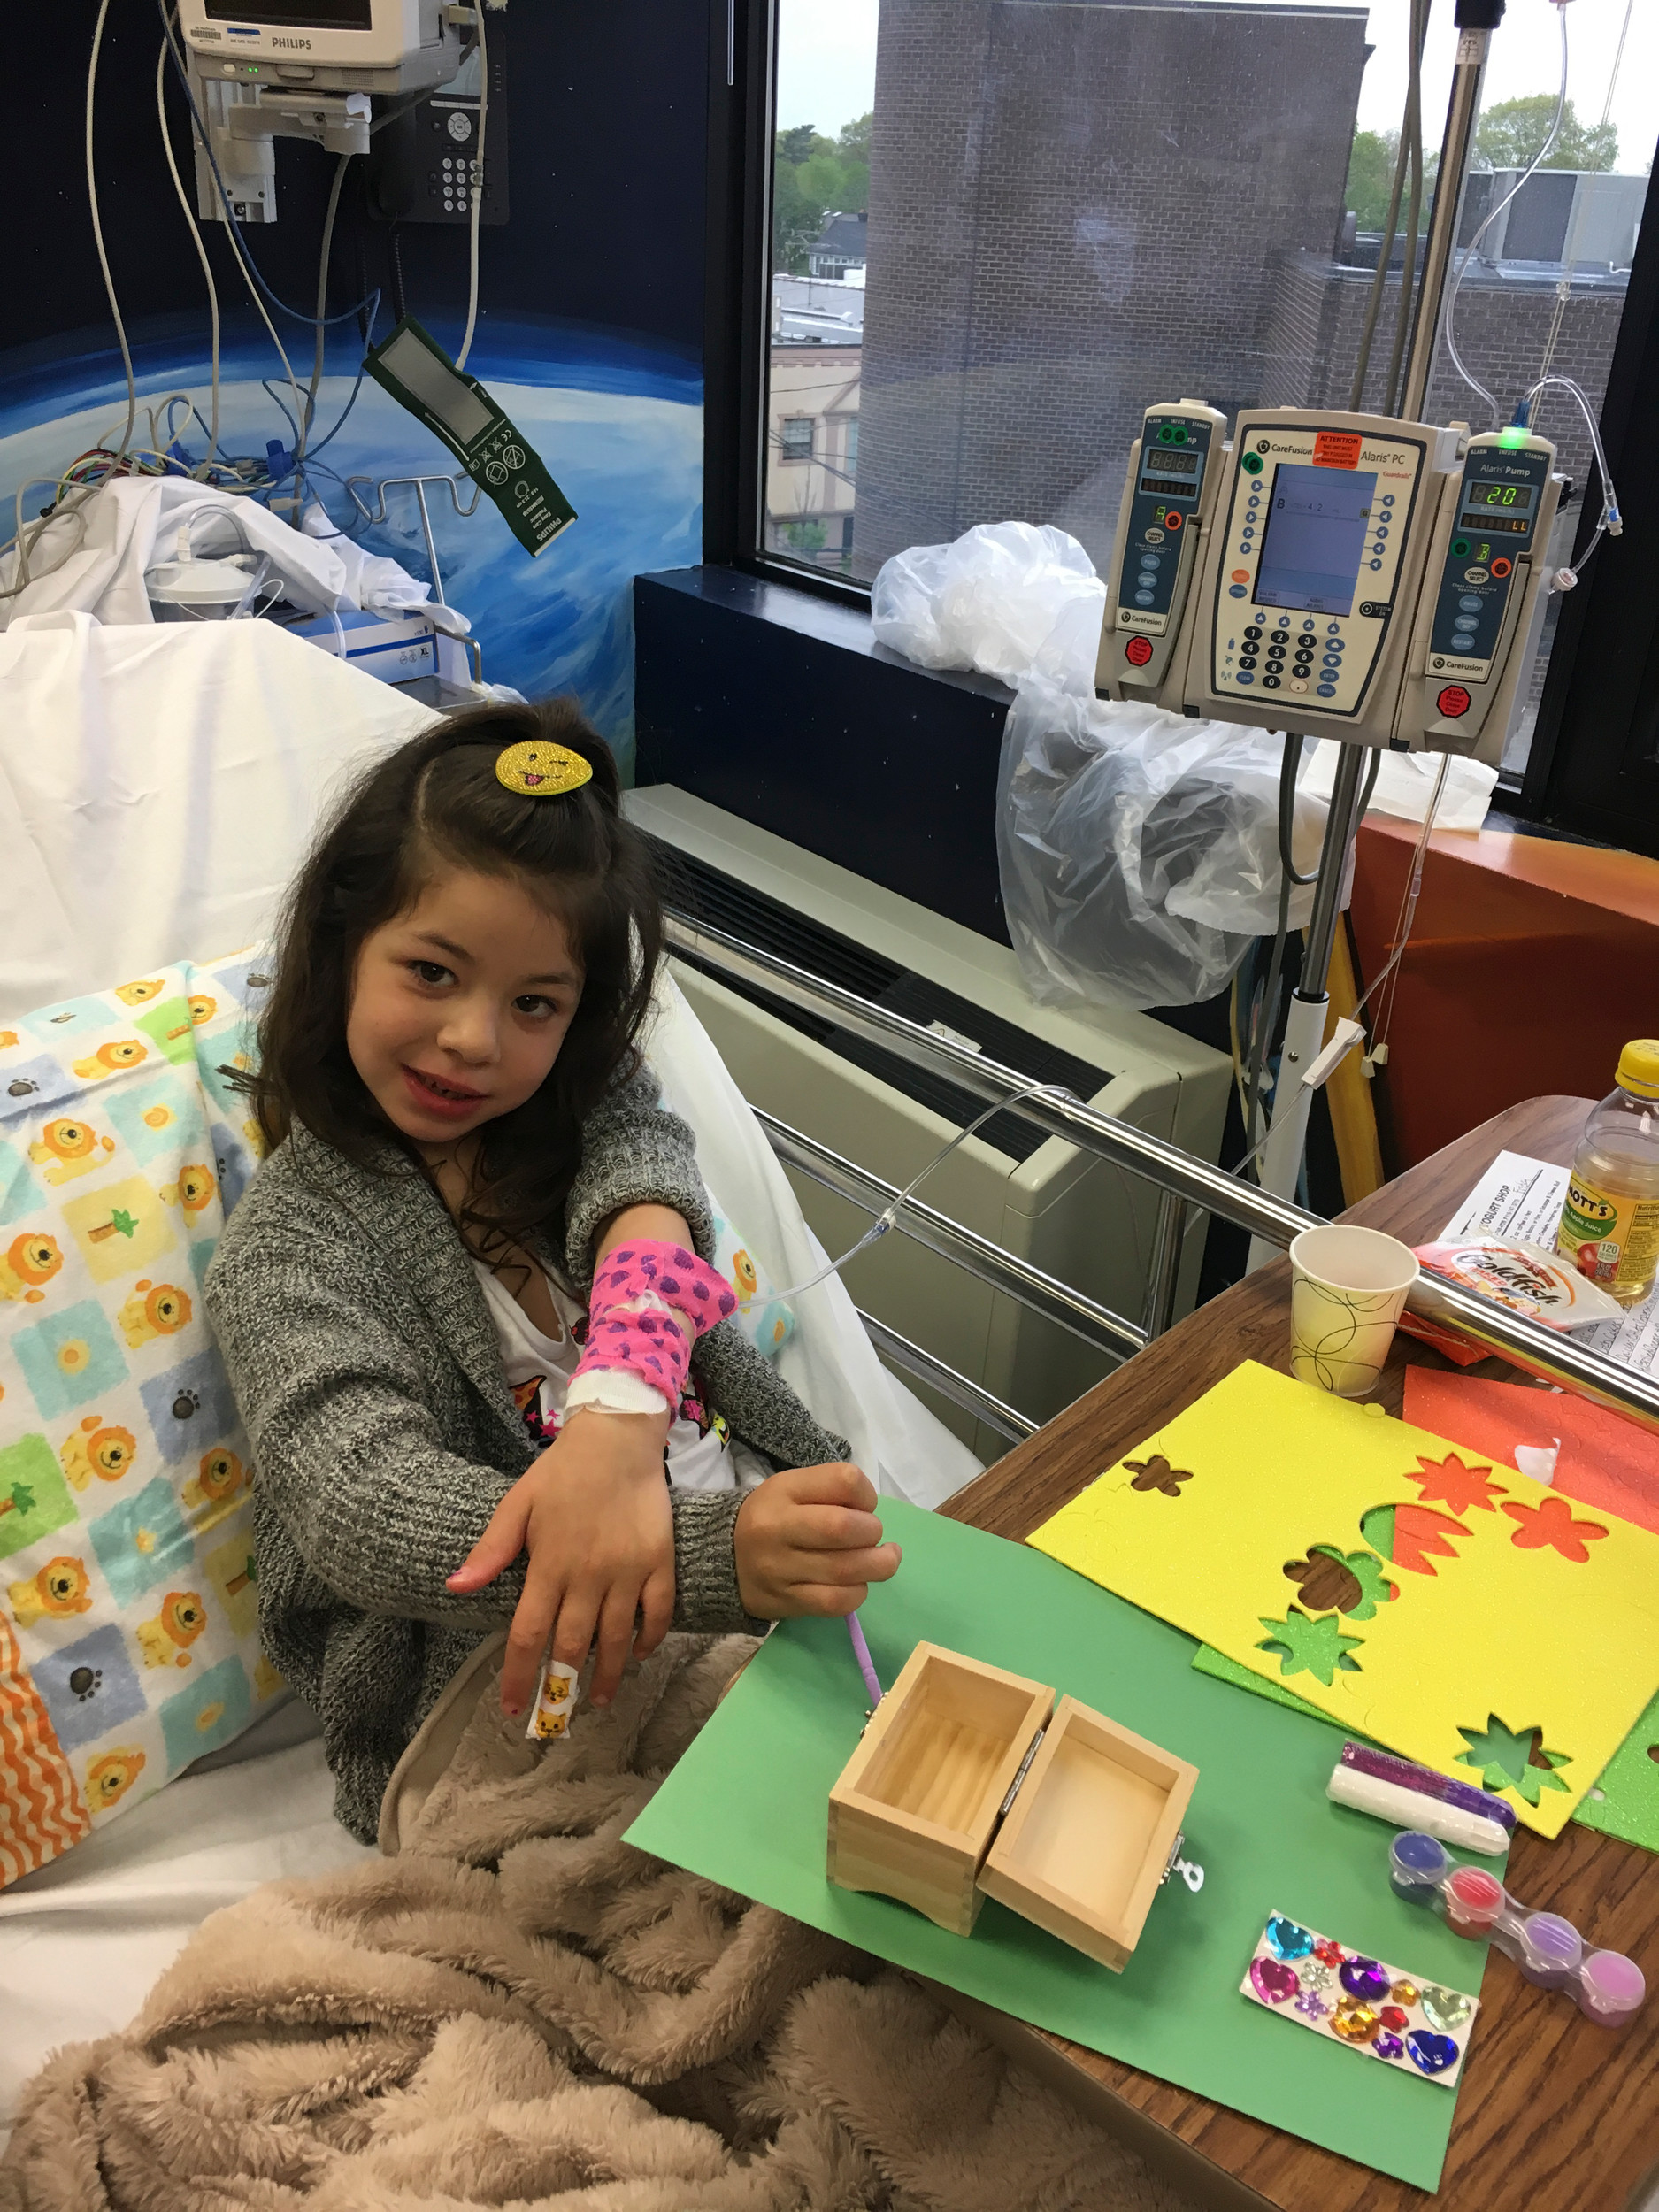 Victoria received an IV treatment at Winthrop University Hospital.